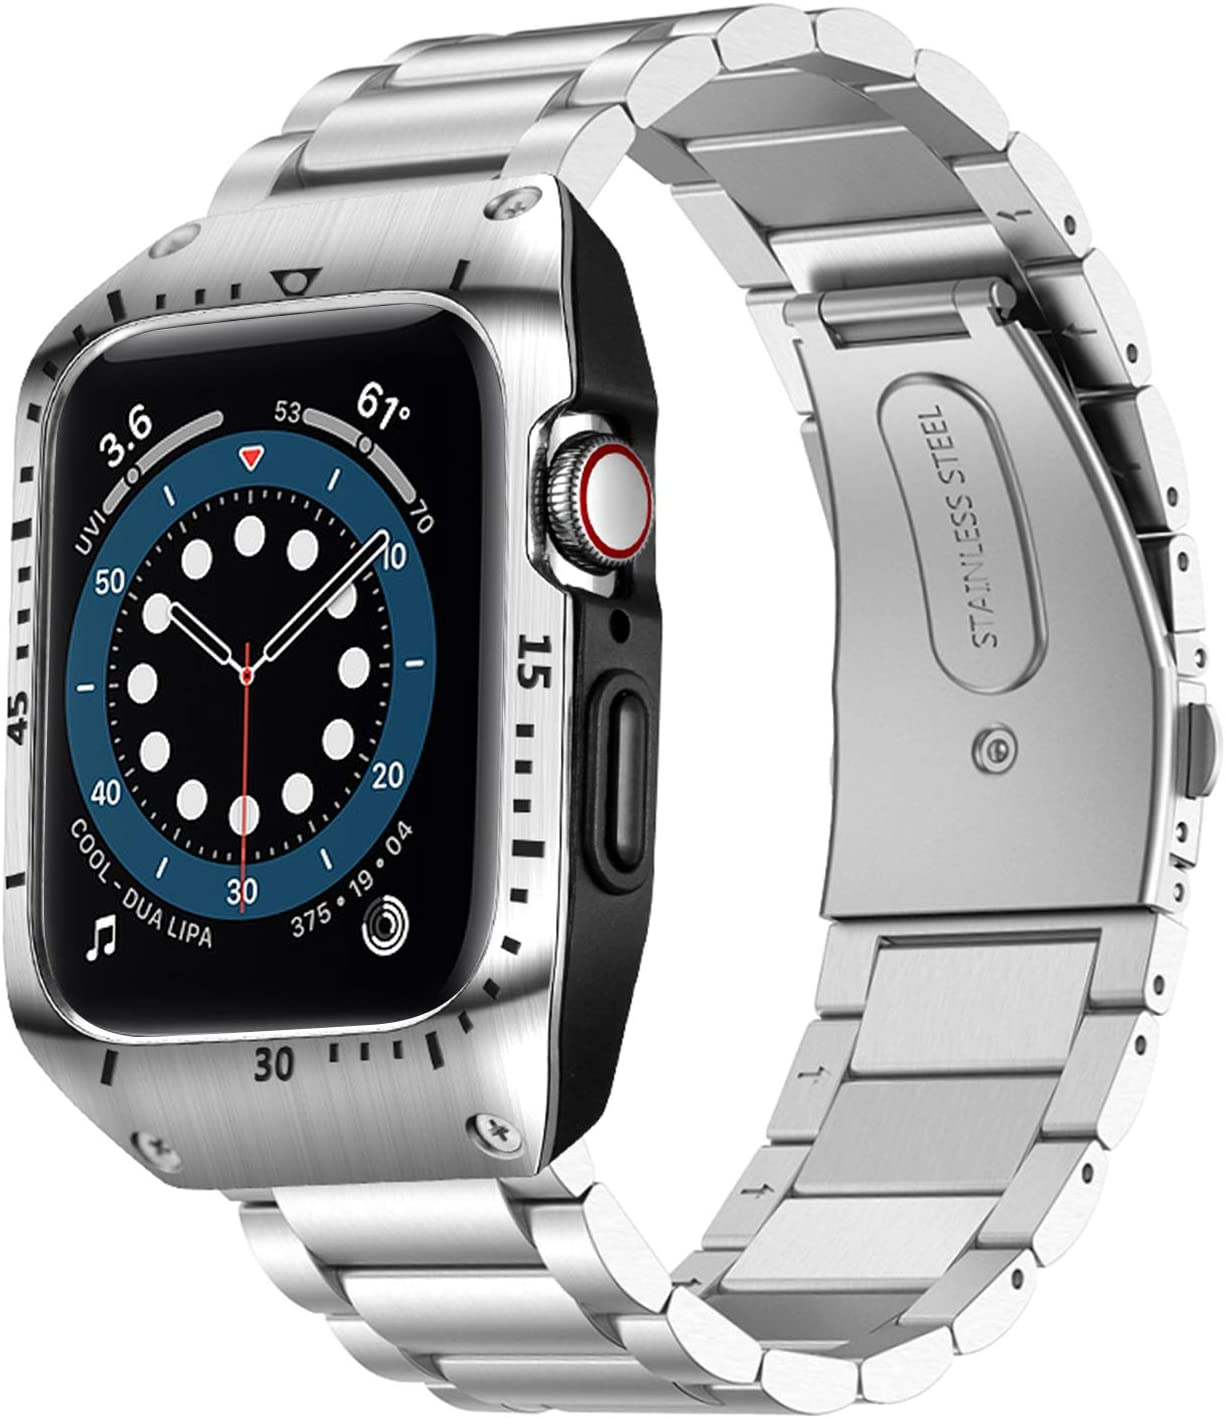 HATALKIN Compatible with Apple Watch Series 6 5 4 44mm Band with Metal Bumper Case,Rugged Men Bands for Apple Watch SE/iWatch 6 5 4 44mm Stainless Steel Cases Protector Drop-Proof Shockproof(Silver)